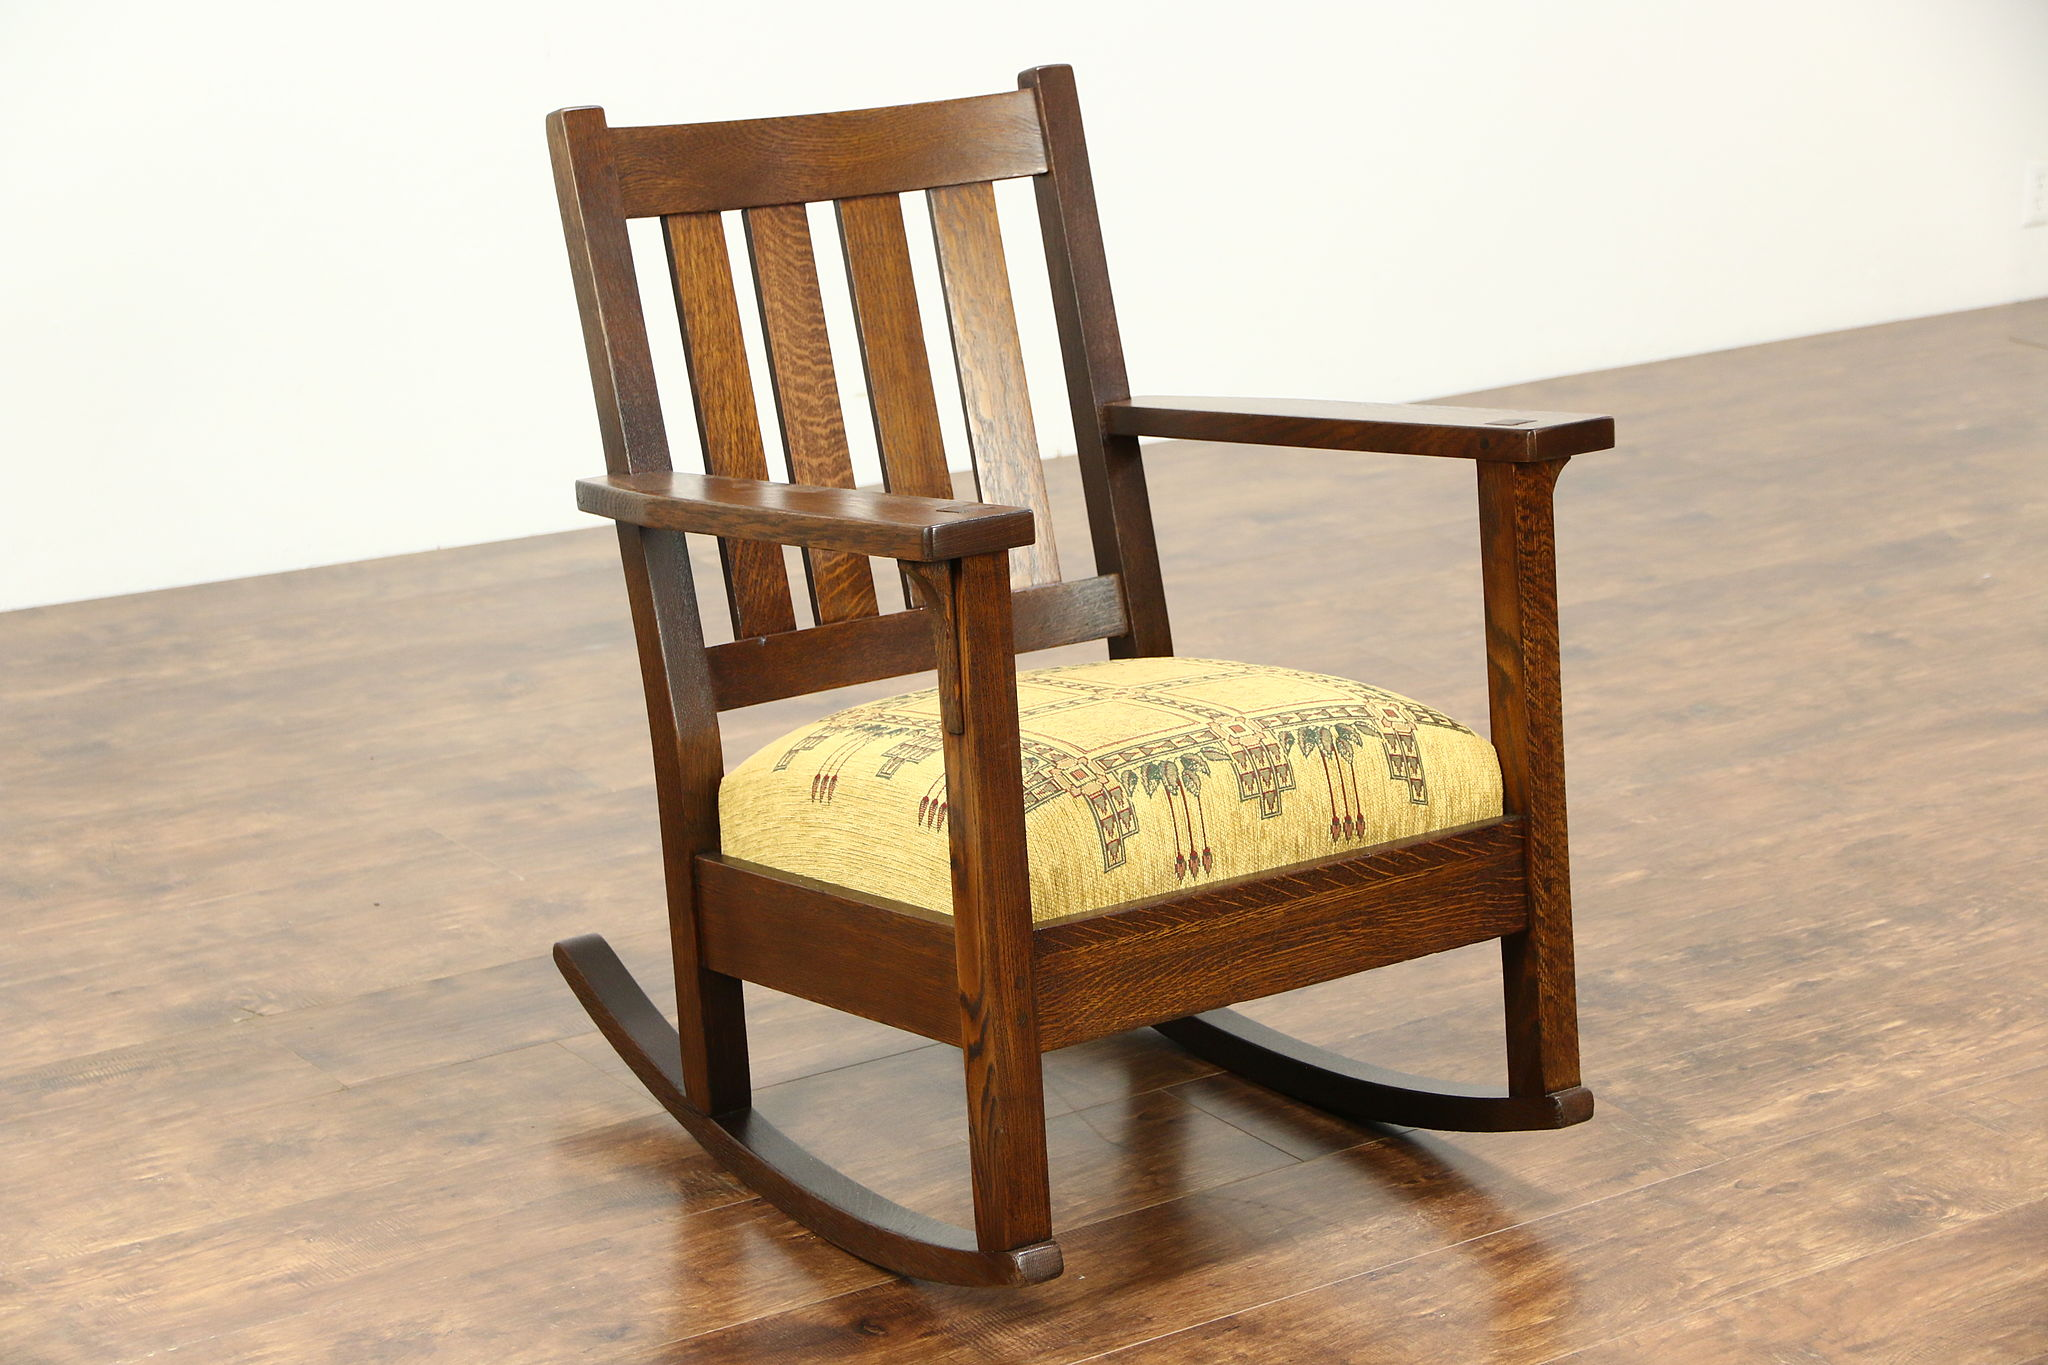 Antique Rocking Chair Sold Arts And Crafts Mission Oak Rocking Chair Antique